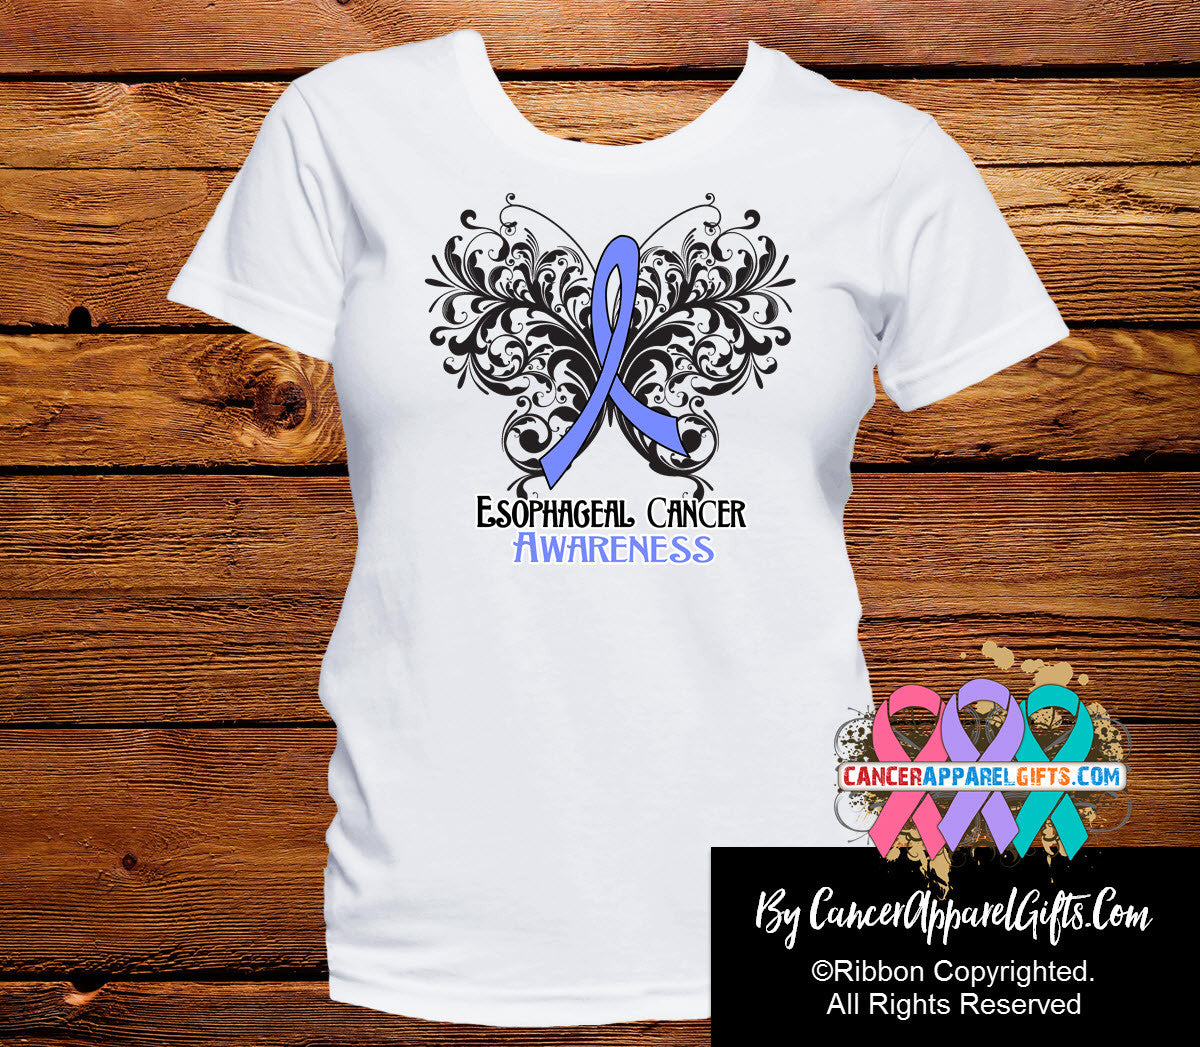 Esophageal Cancer Butterfly Ribbon Shirts - Cancer Apparel and Gifts